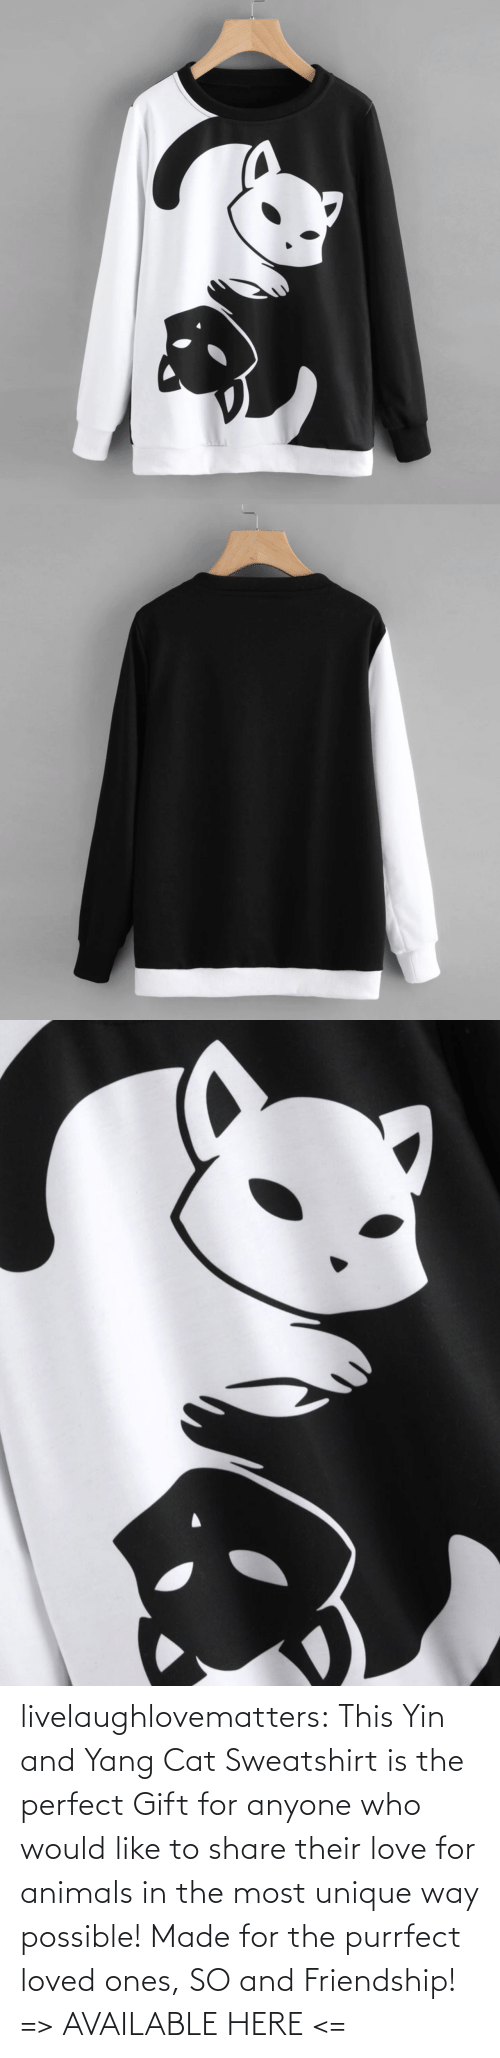 Https: livelaughlovematters: This Yin and Yang Cat Sweatshirt is the perfect Gift for anyone who would like to share their love for animals in the most unique way possible! Made for the purrfect loved ones, SO and Friendship!  => AVAILABLE HERE <=